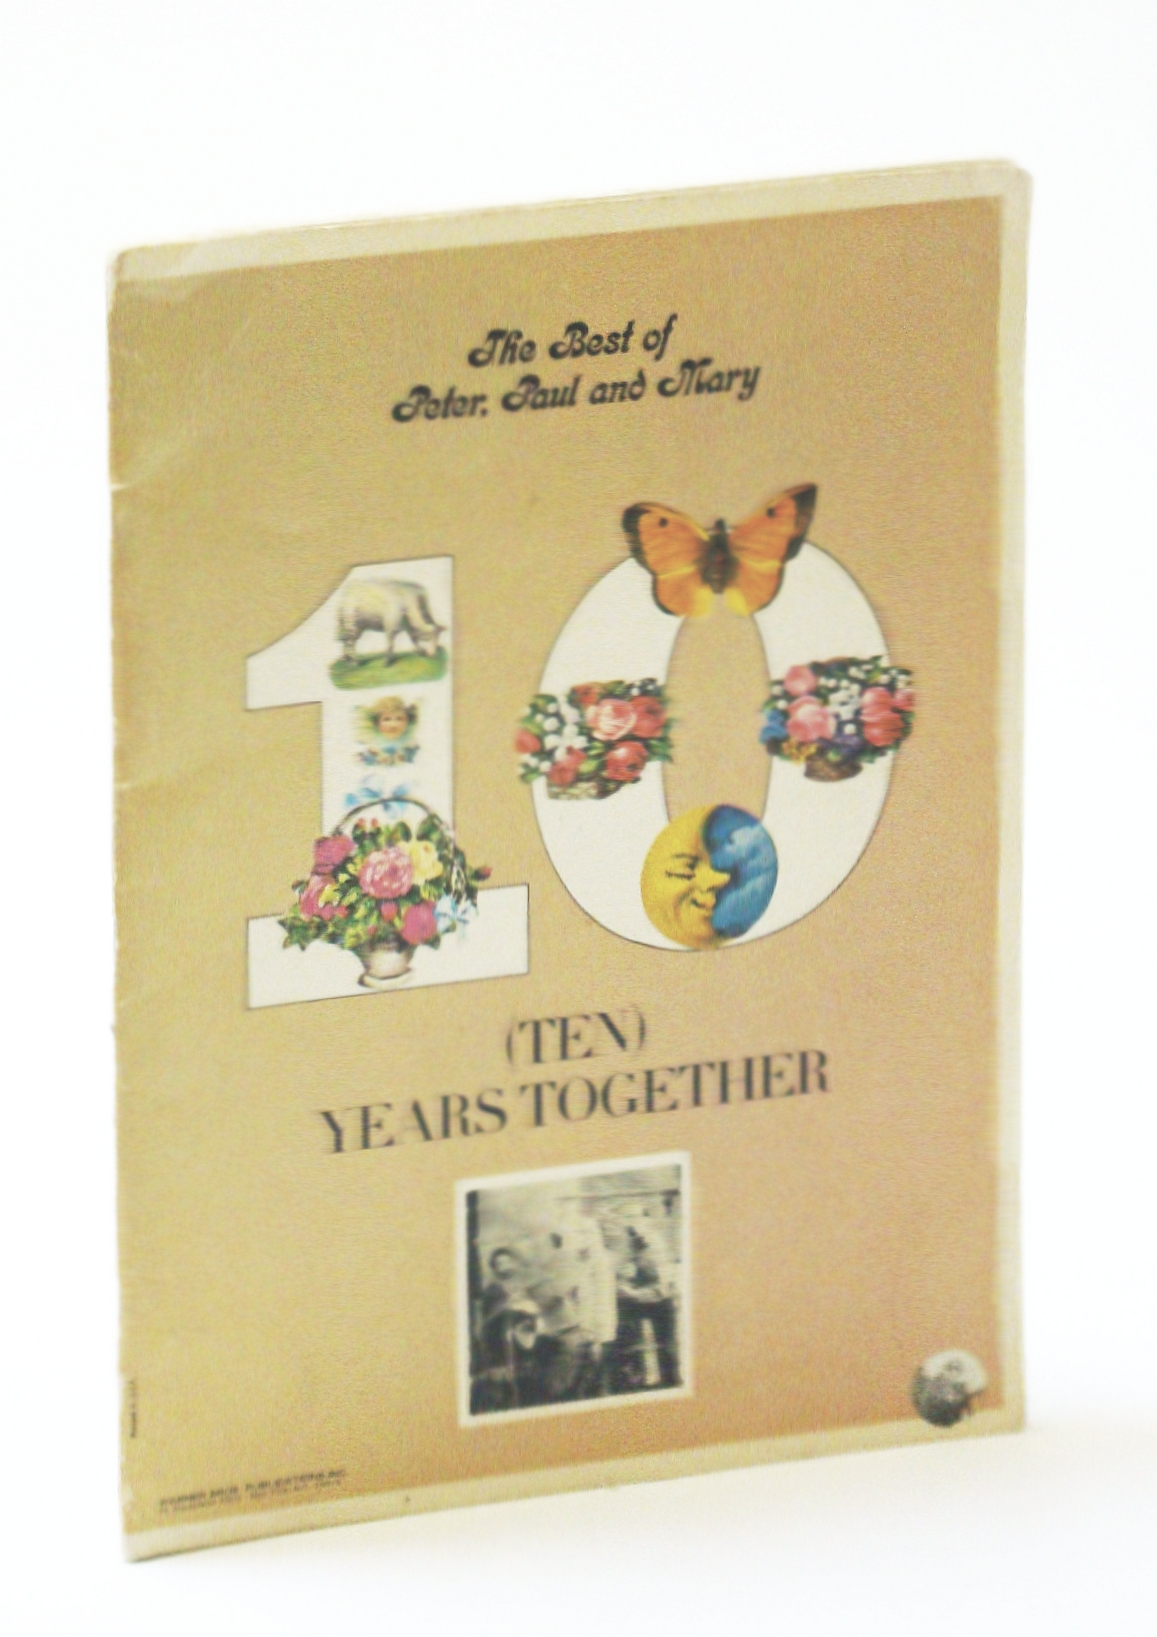 Image for 10 (Ten) Years Together: The Best of Peter Paul and Mary - Songbook (Song Book) with Piano Sheet Music, Lyrics and Guitar Chords